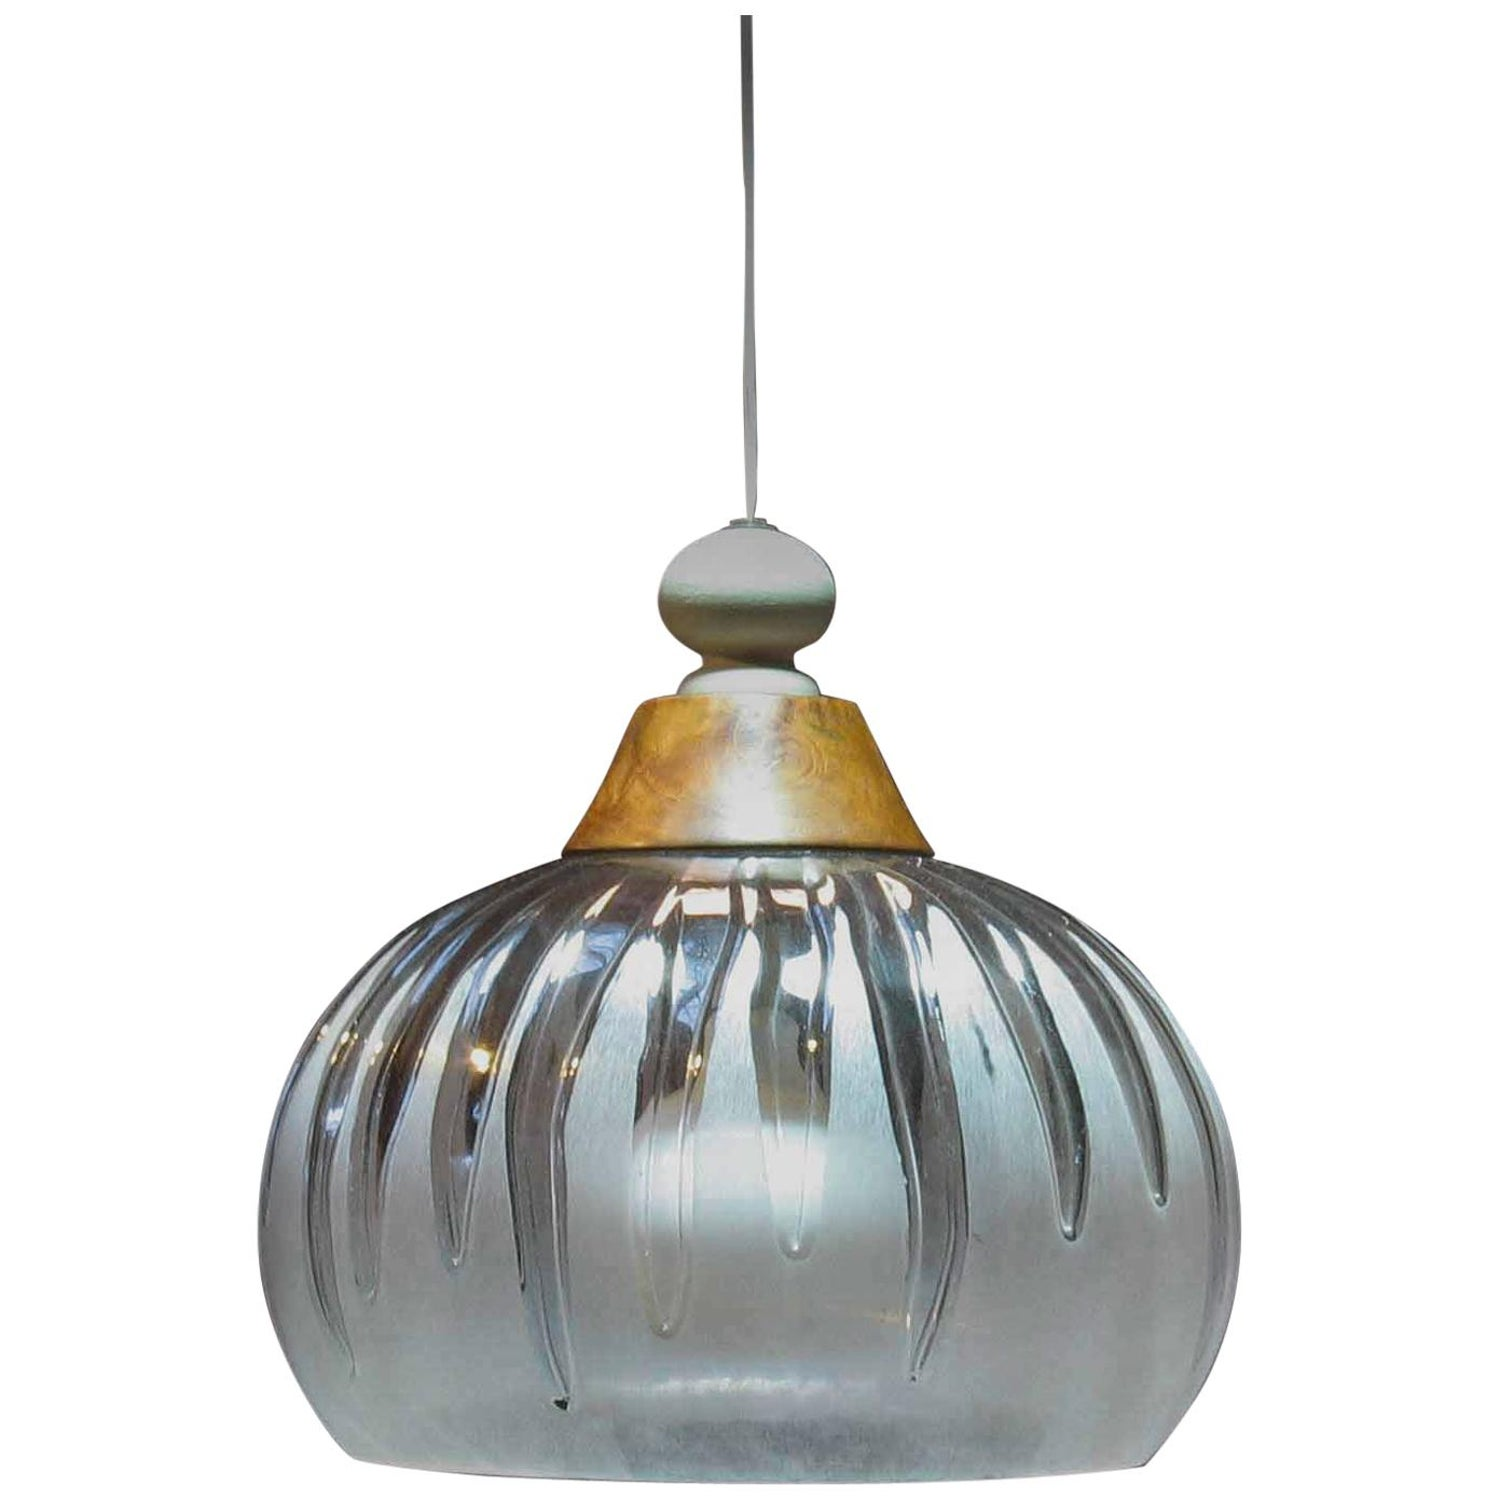 Stylish mid century pendant light fixture melting ice frosted and clear lucite for sale at 1stdibs